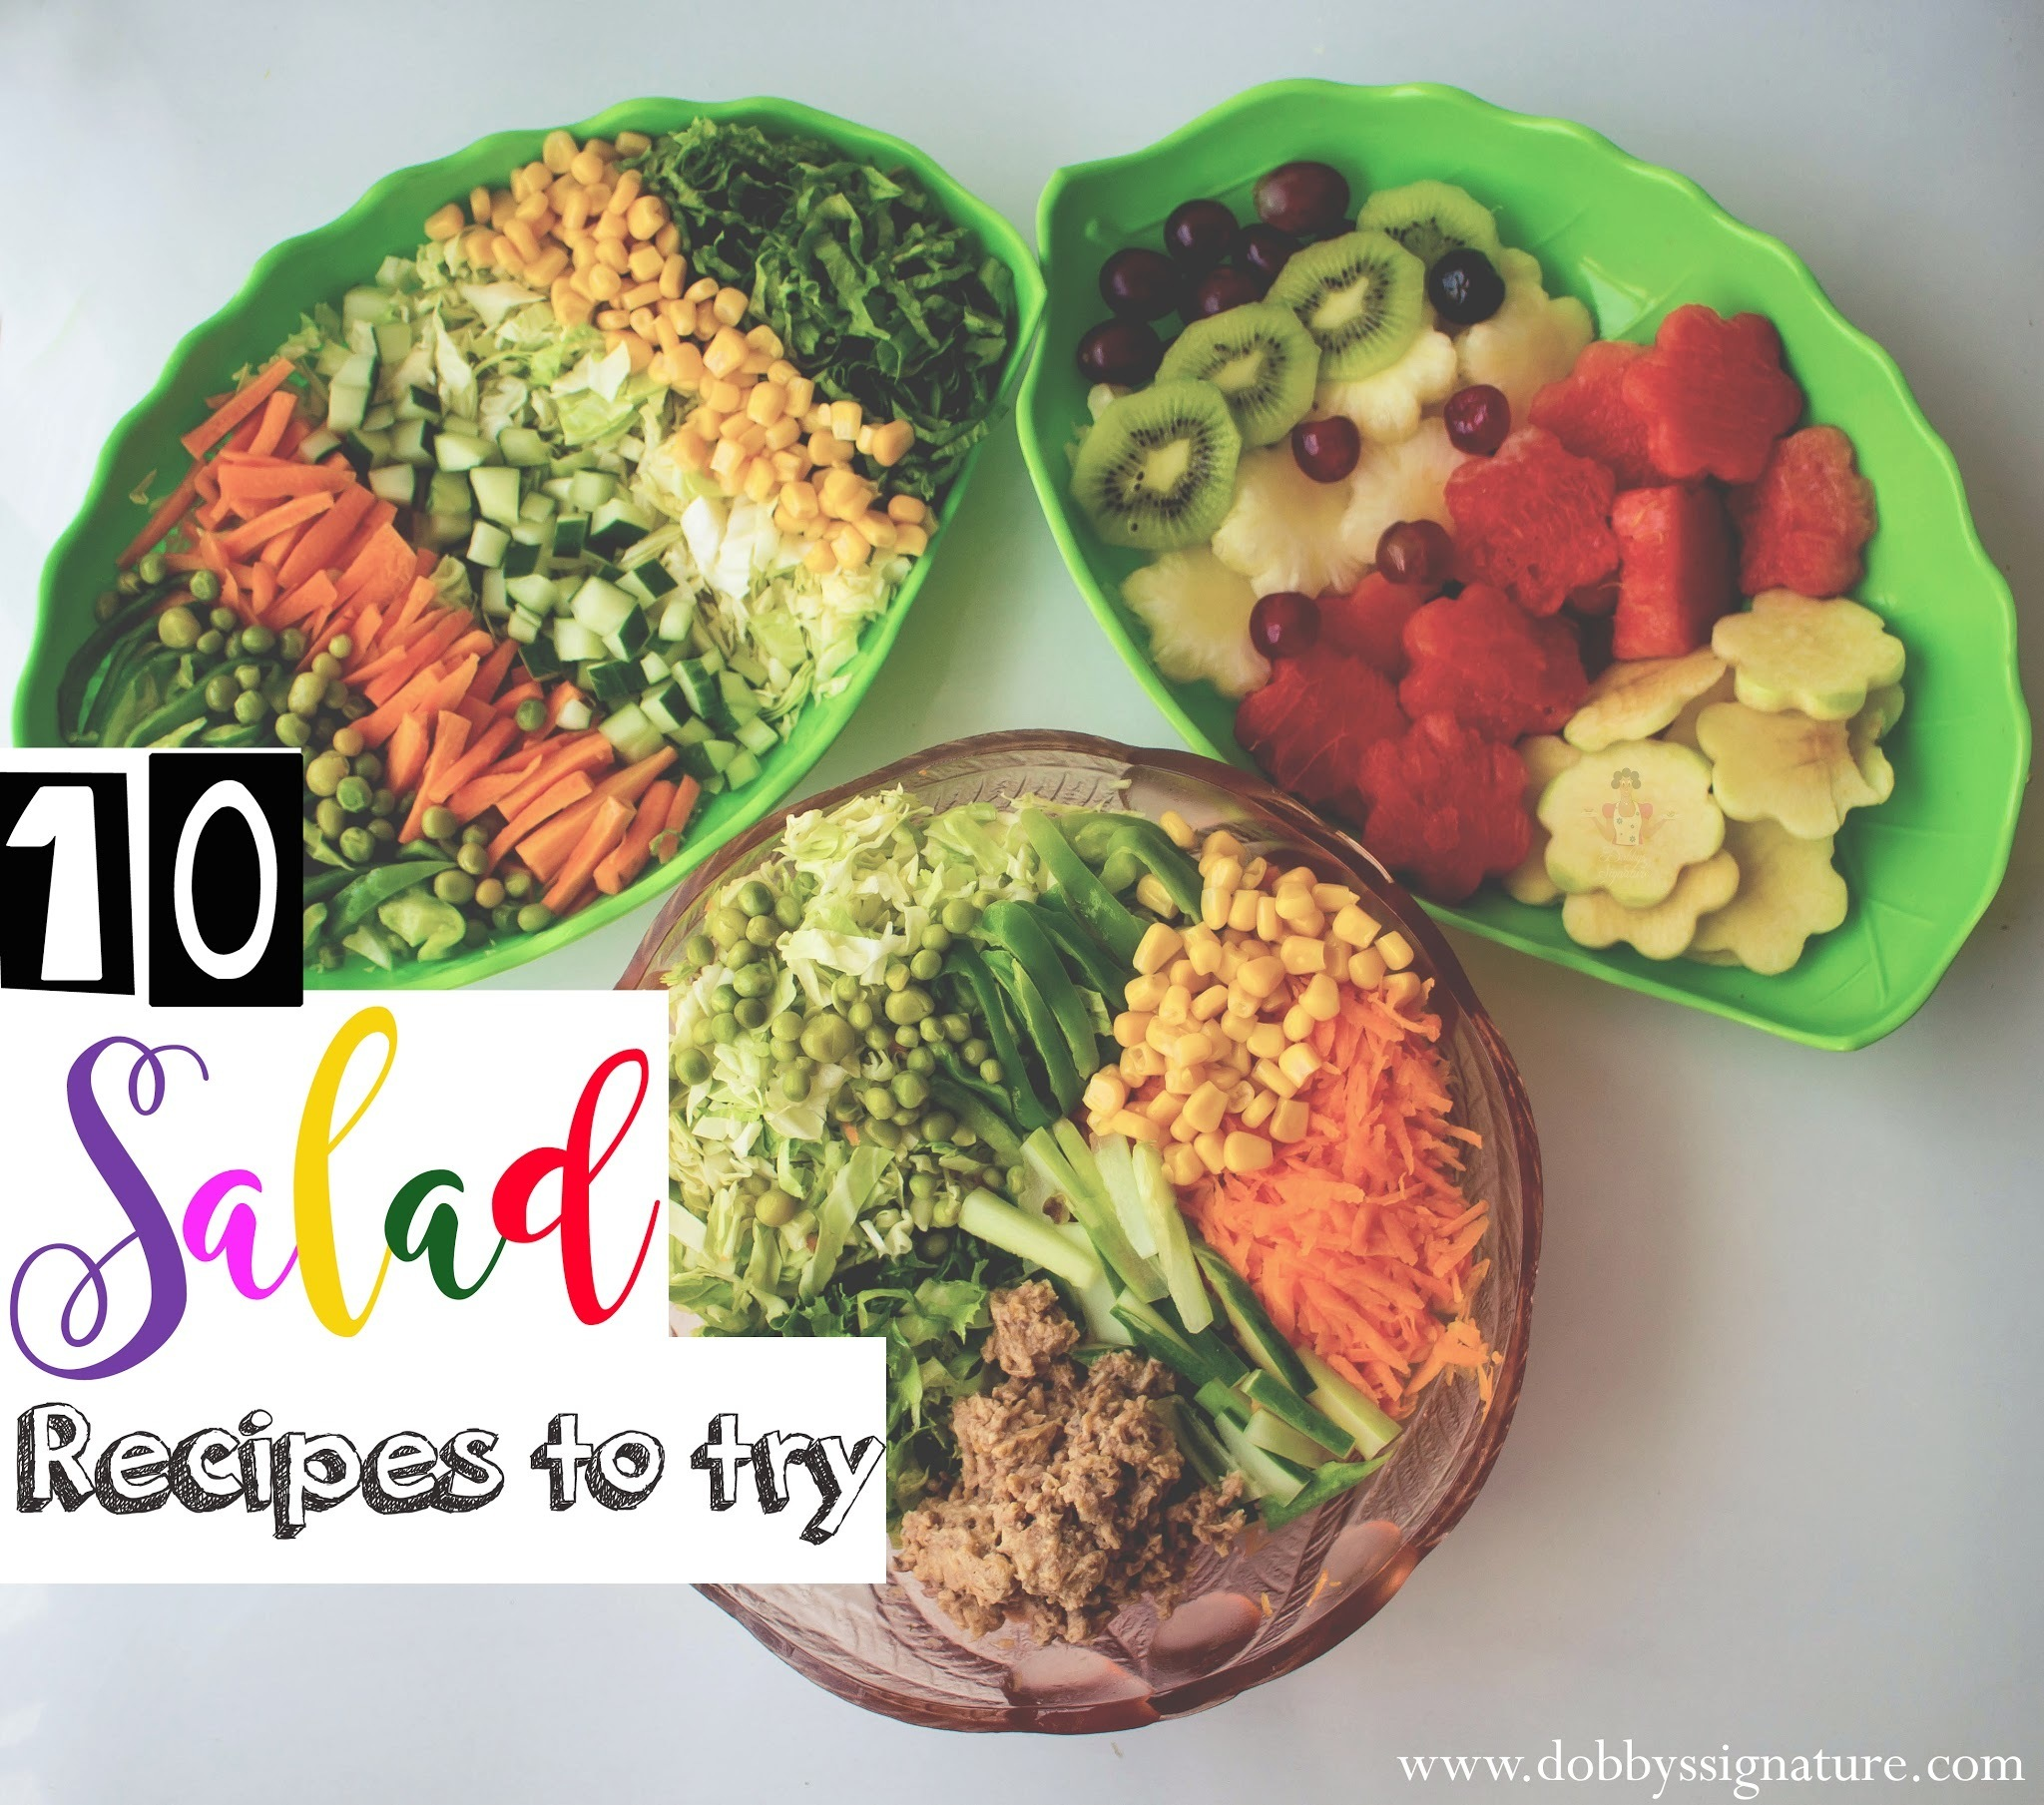 10 salad recipes to try